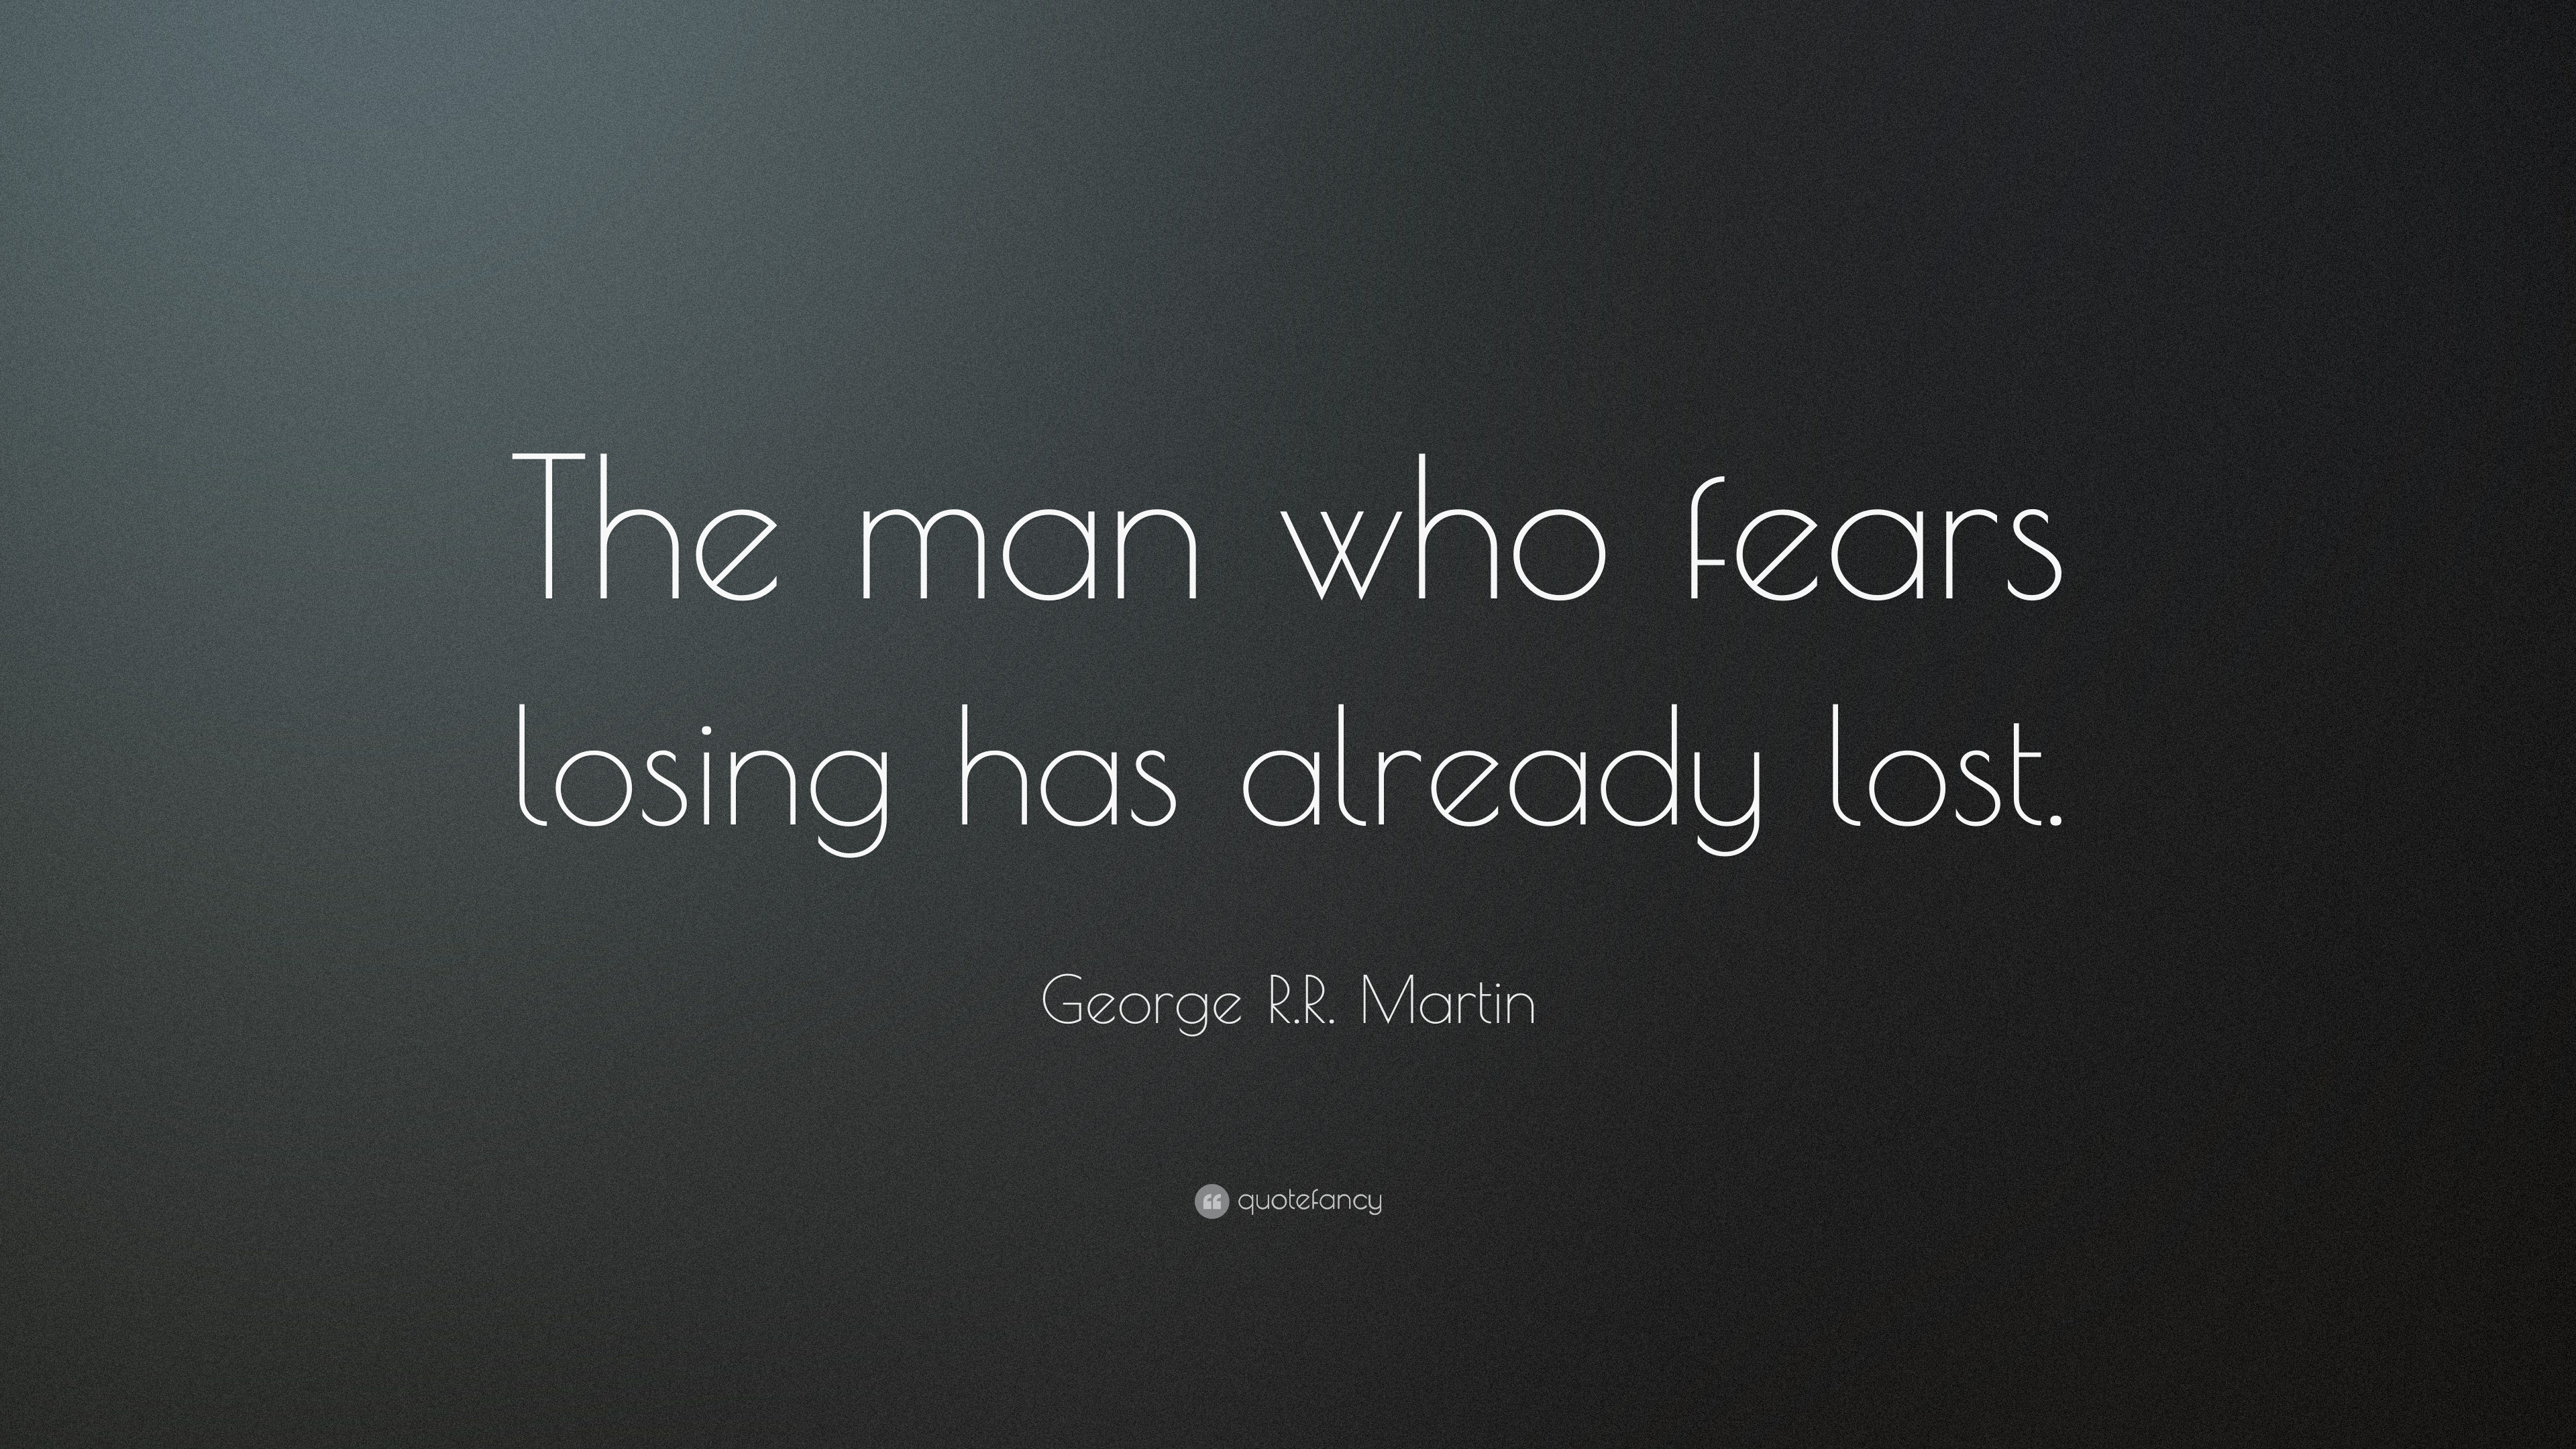 George Rr Martin Quote The Man Who Fears Losing Has Already Lost